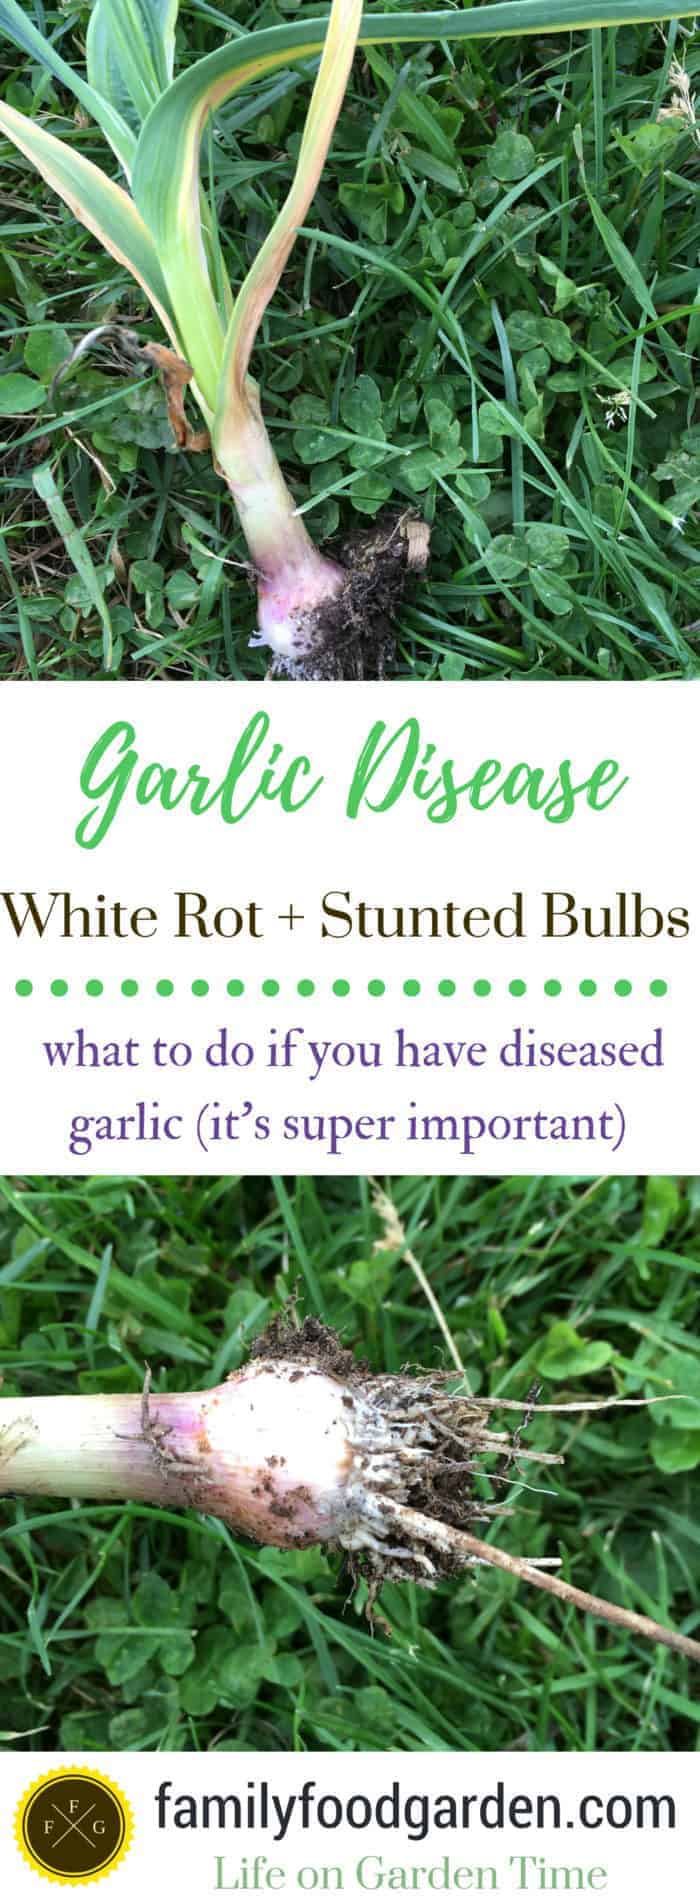 How to tell if you have garlic disease and white rot. DO NOT compost them!